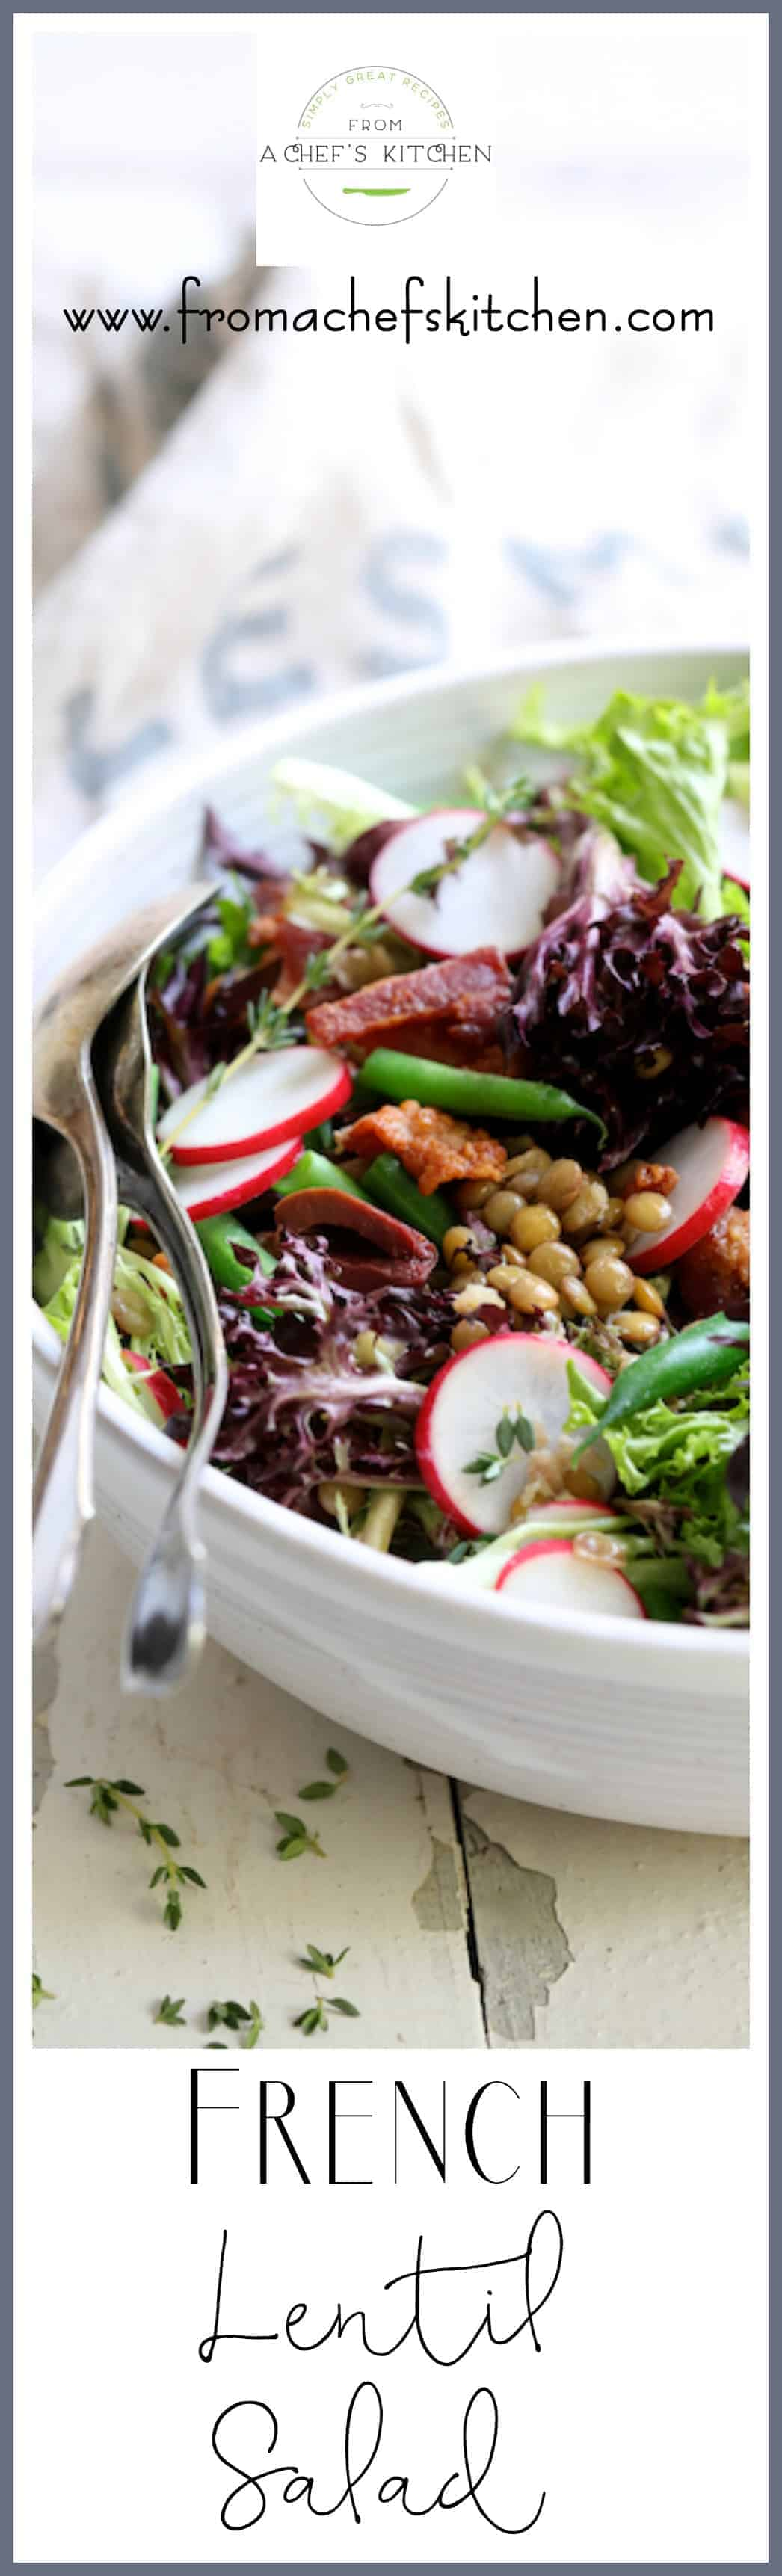 French Lentil Salad is a lovely and delicious way to ring in spring! With radishes, young green beans and baby lettuces, it's perfect for that first dinner on the patio! #french #lentil #salad #vegetable